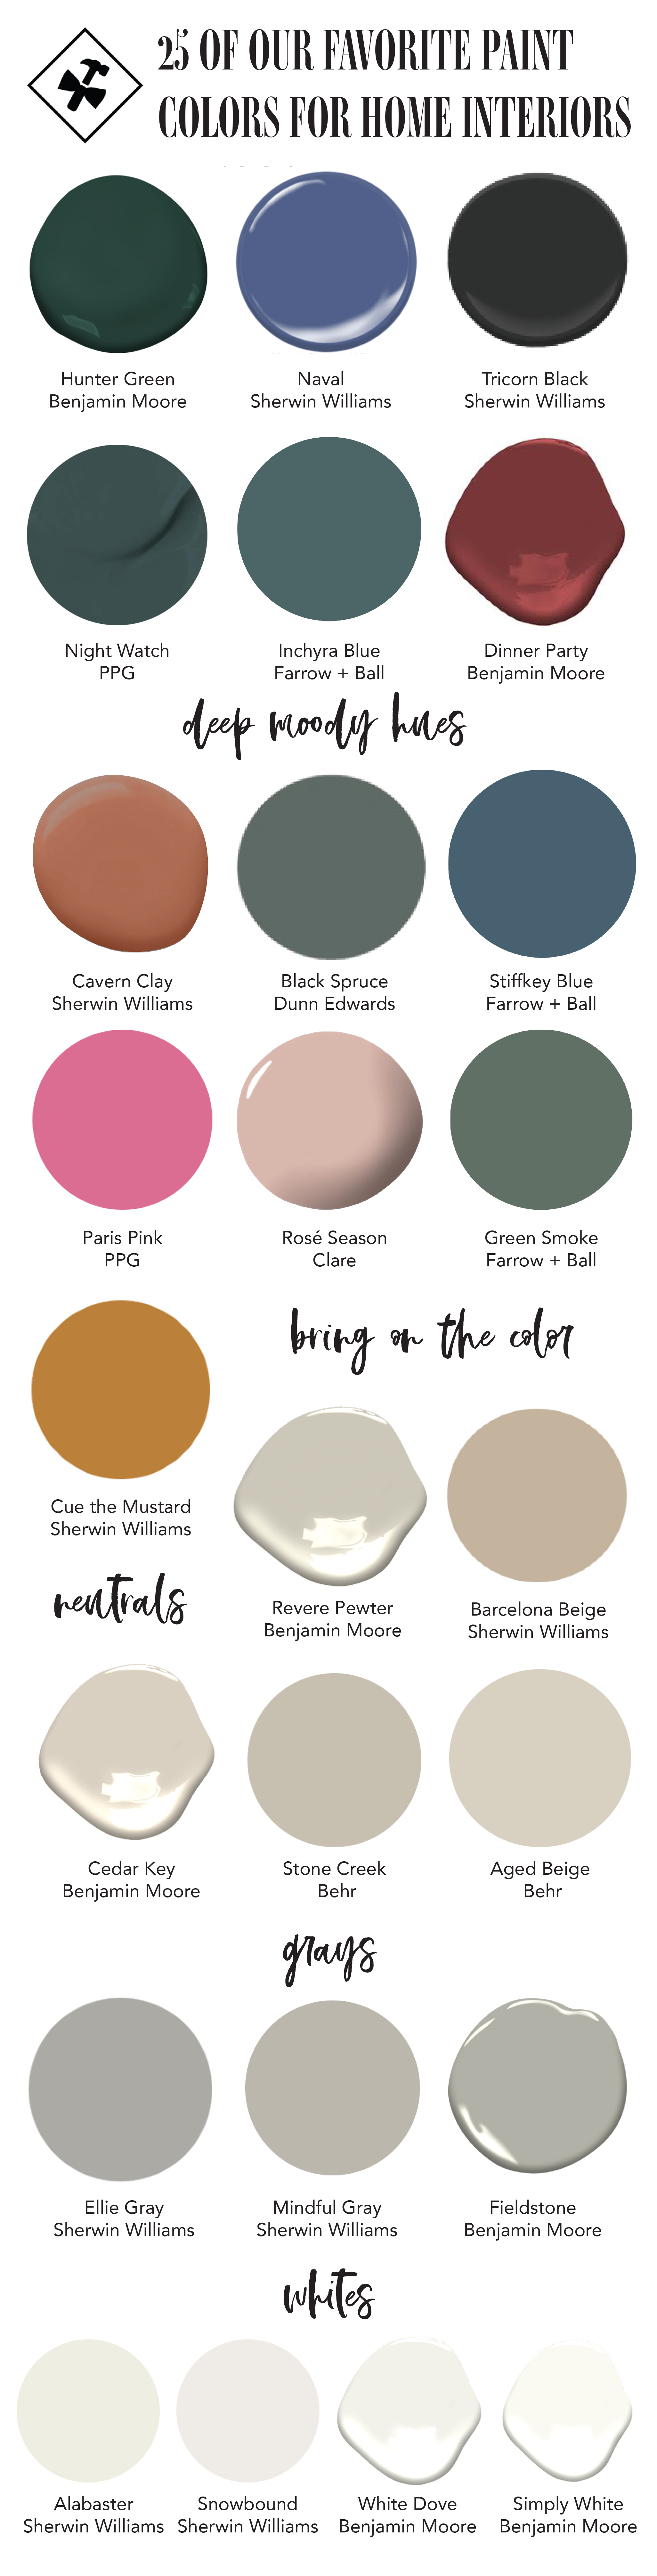 25 of Our Favorite Paint Colors for Home Interiors   construction2style